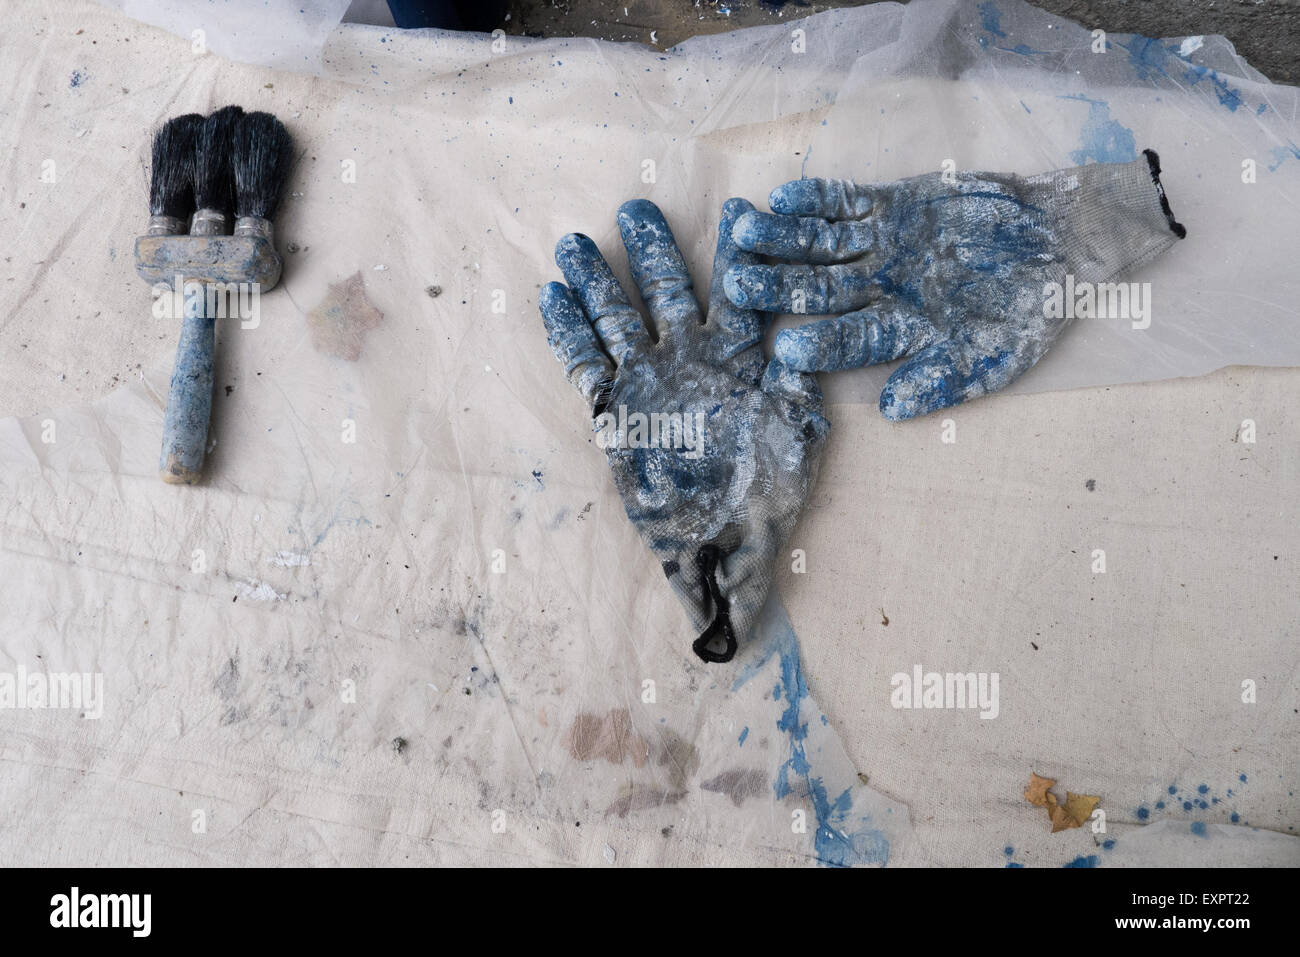 Notting Hill, London, England. Pair of workman's gloves and brush on a plastic sheet. - Stock Image